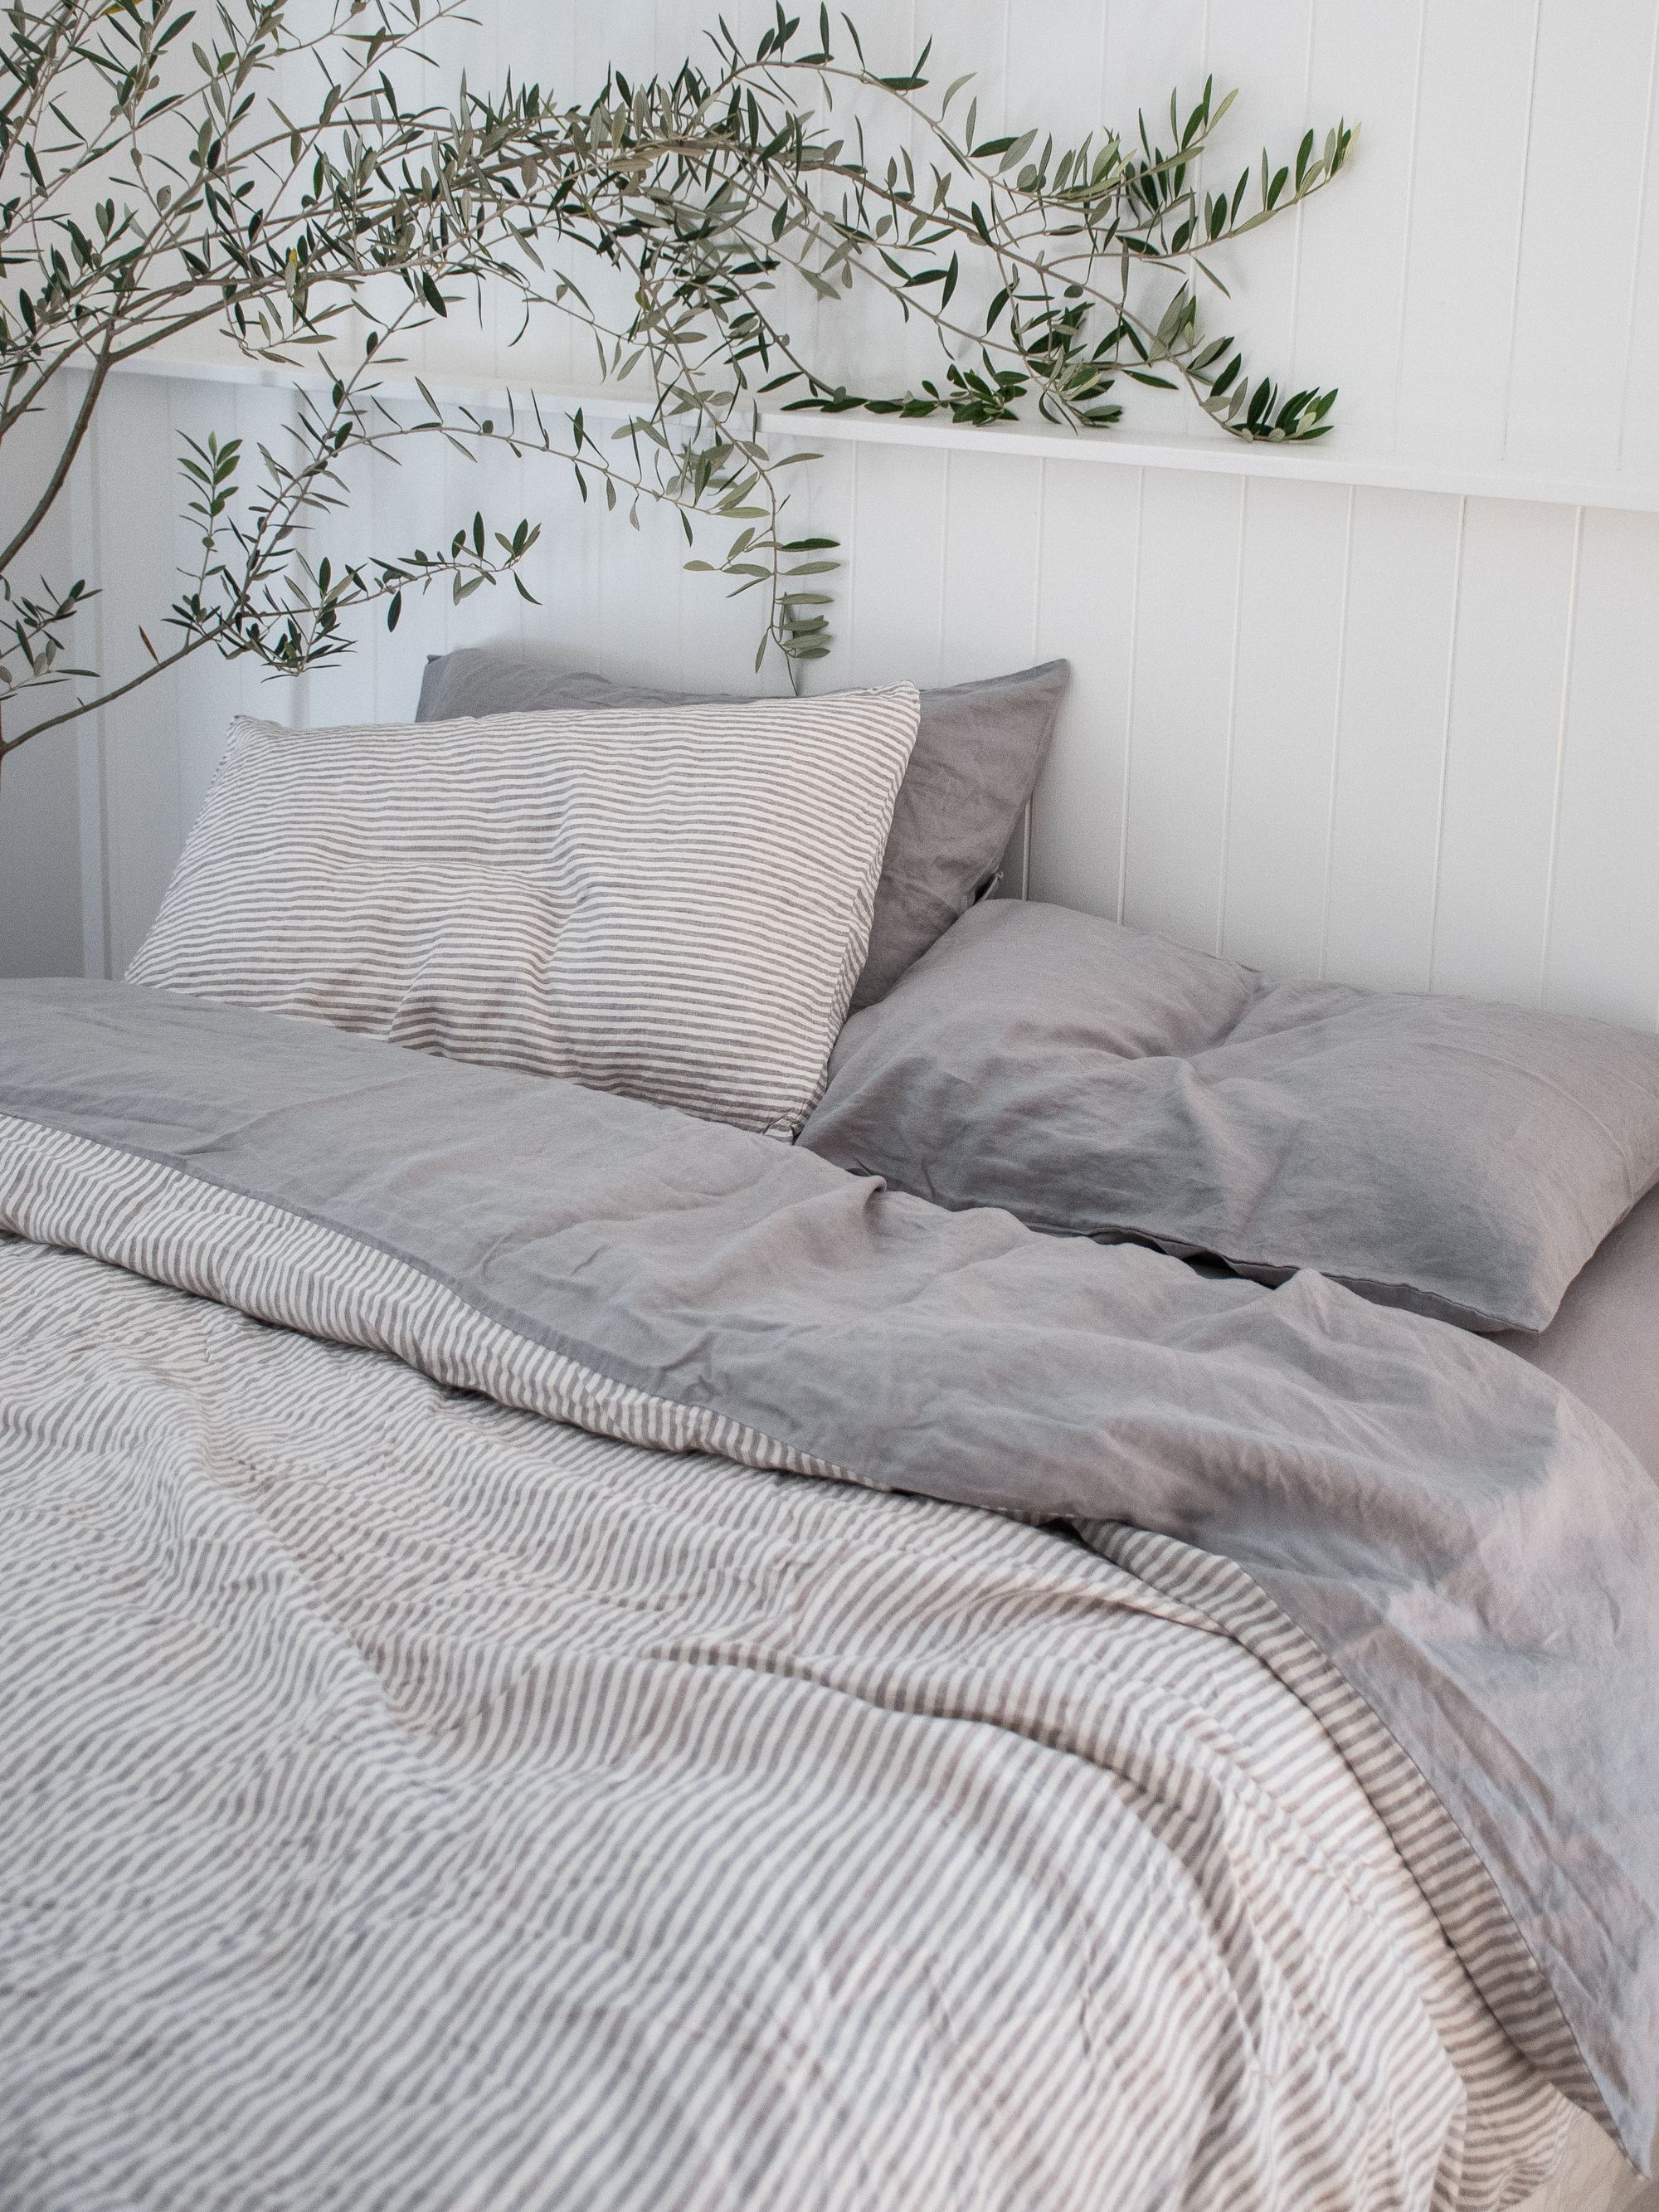 French Linen Bedding In Soft Grey Soft Grey Stripe Beautiful Home Decor Aesthetic Design Bedroom Styling Aesthetic Bedroom Grey Bed Sheets Bed Sheets